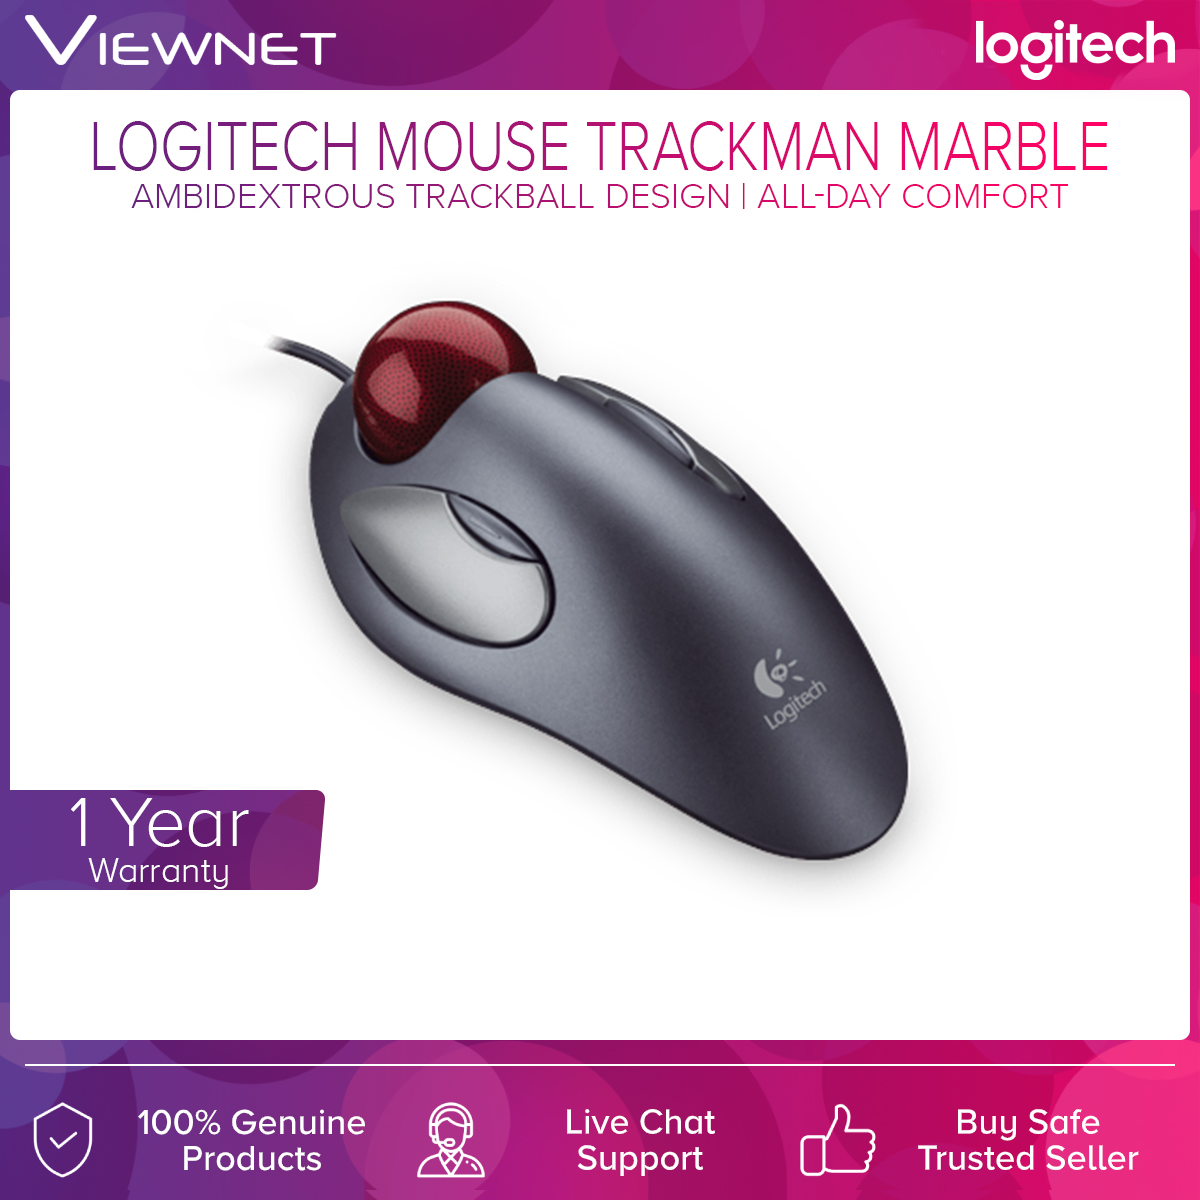 Logitech TrackMan Marble, Wired Trackball Mouse, (910-000816), Black, 300 DPI, Marble Optical Tracking, USB, PC, Mac, Laptop